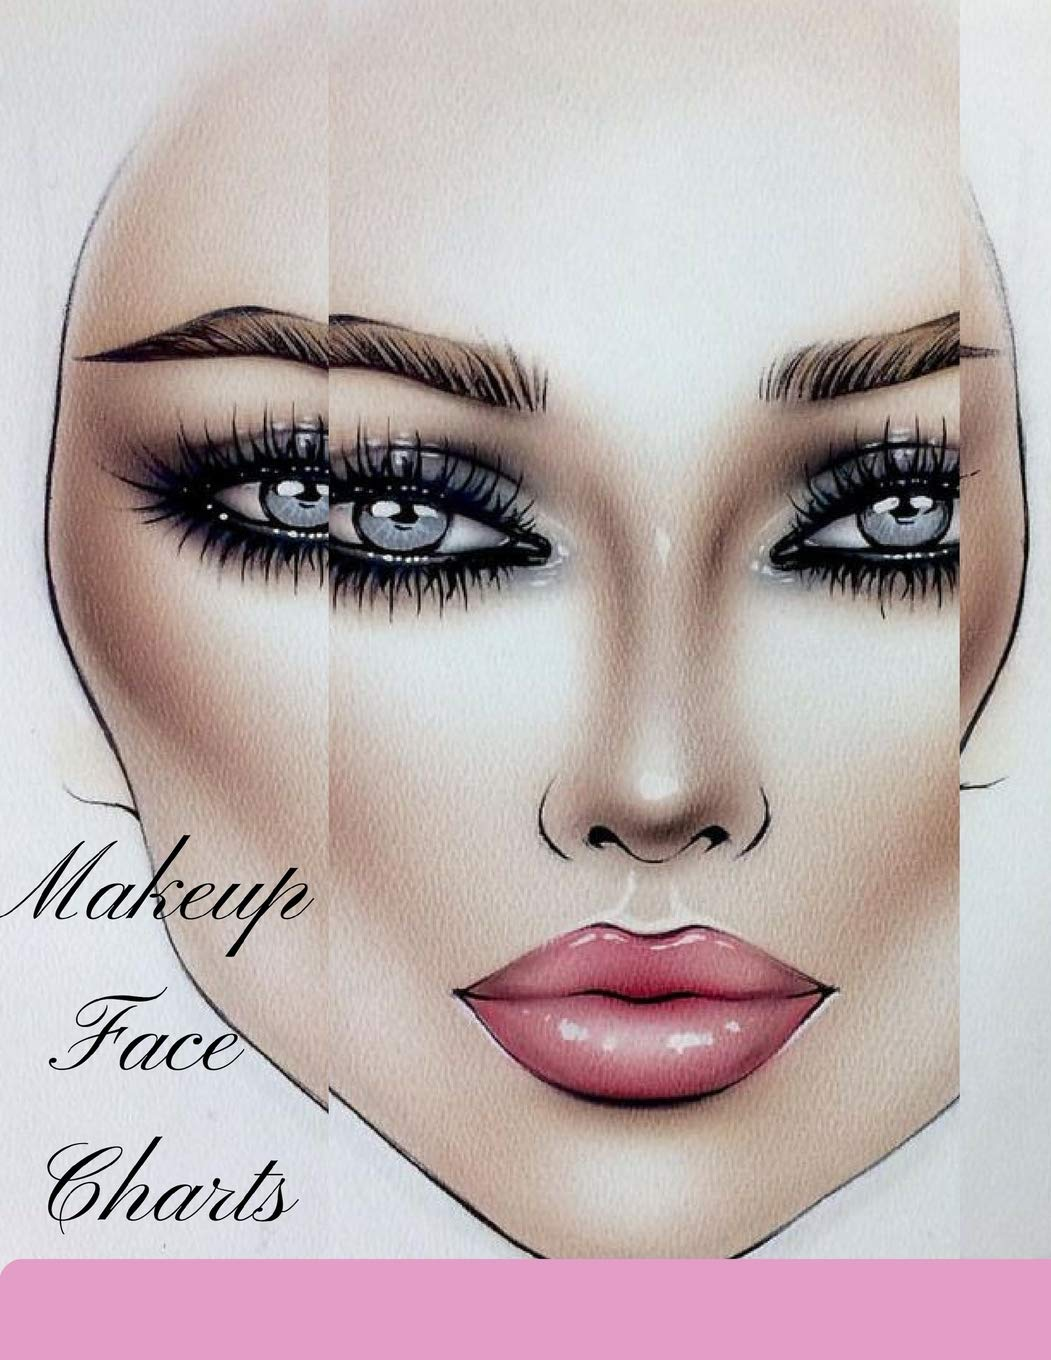 Makeup Face Charts The Blank Workbook Paper Practice Face Charts For Professional Makeup Artists